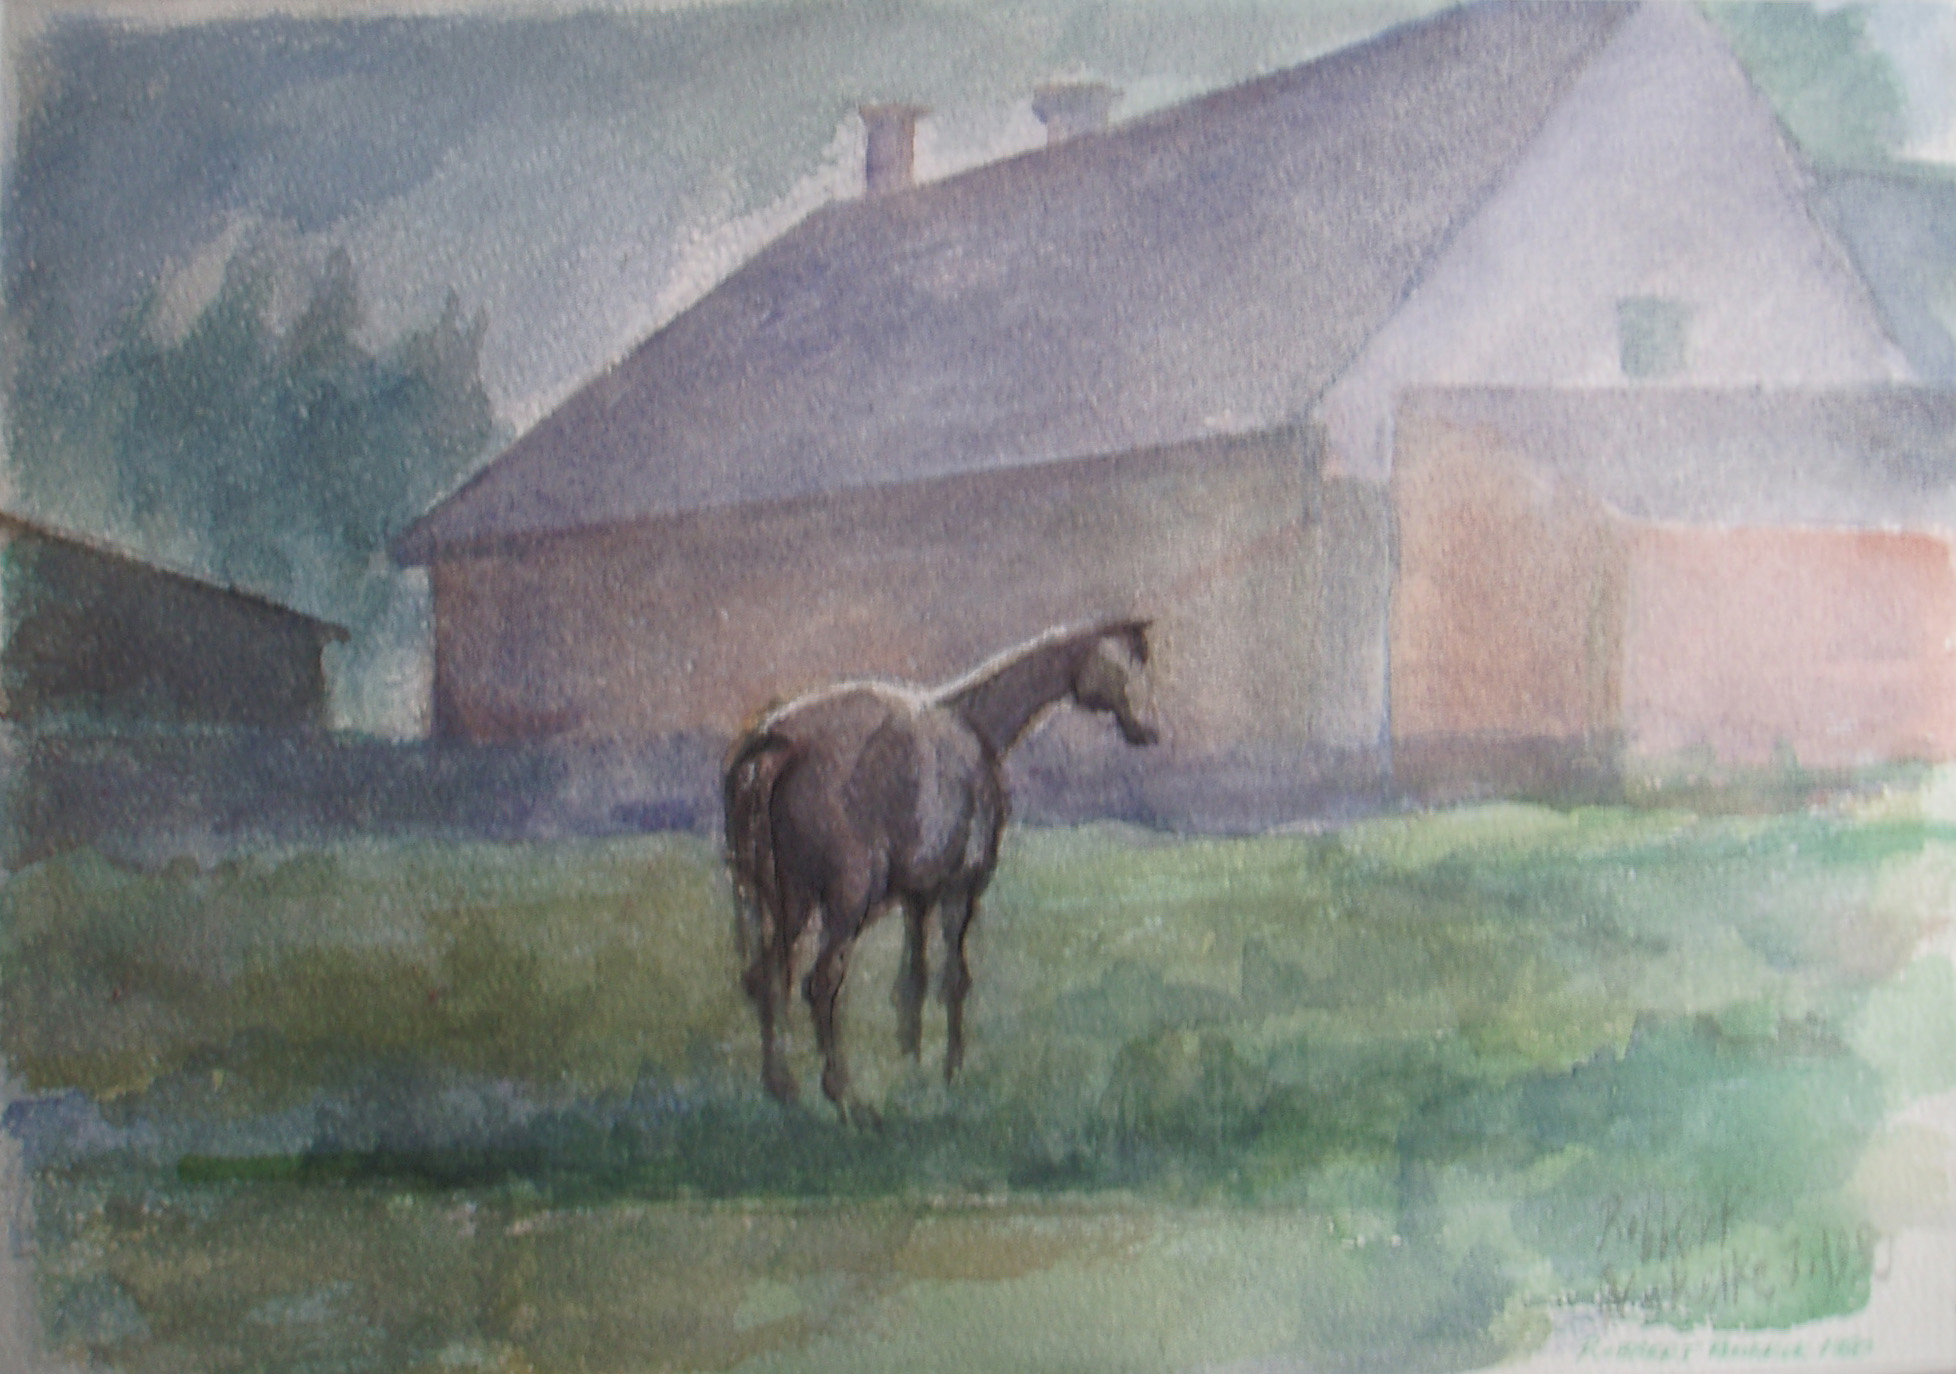 Robbert Ruigrok, 'Horse at Farmhouse', 1980. Watercolour on Paper.